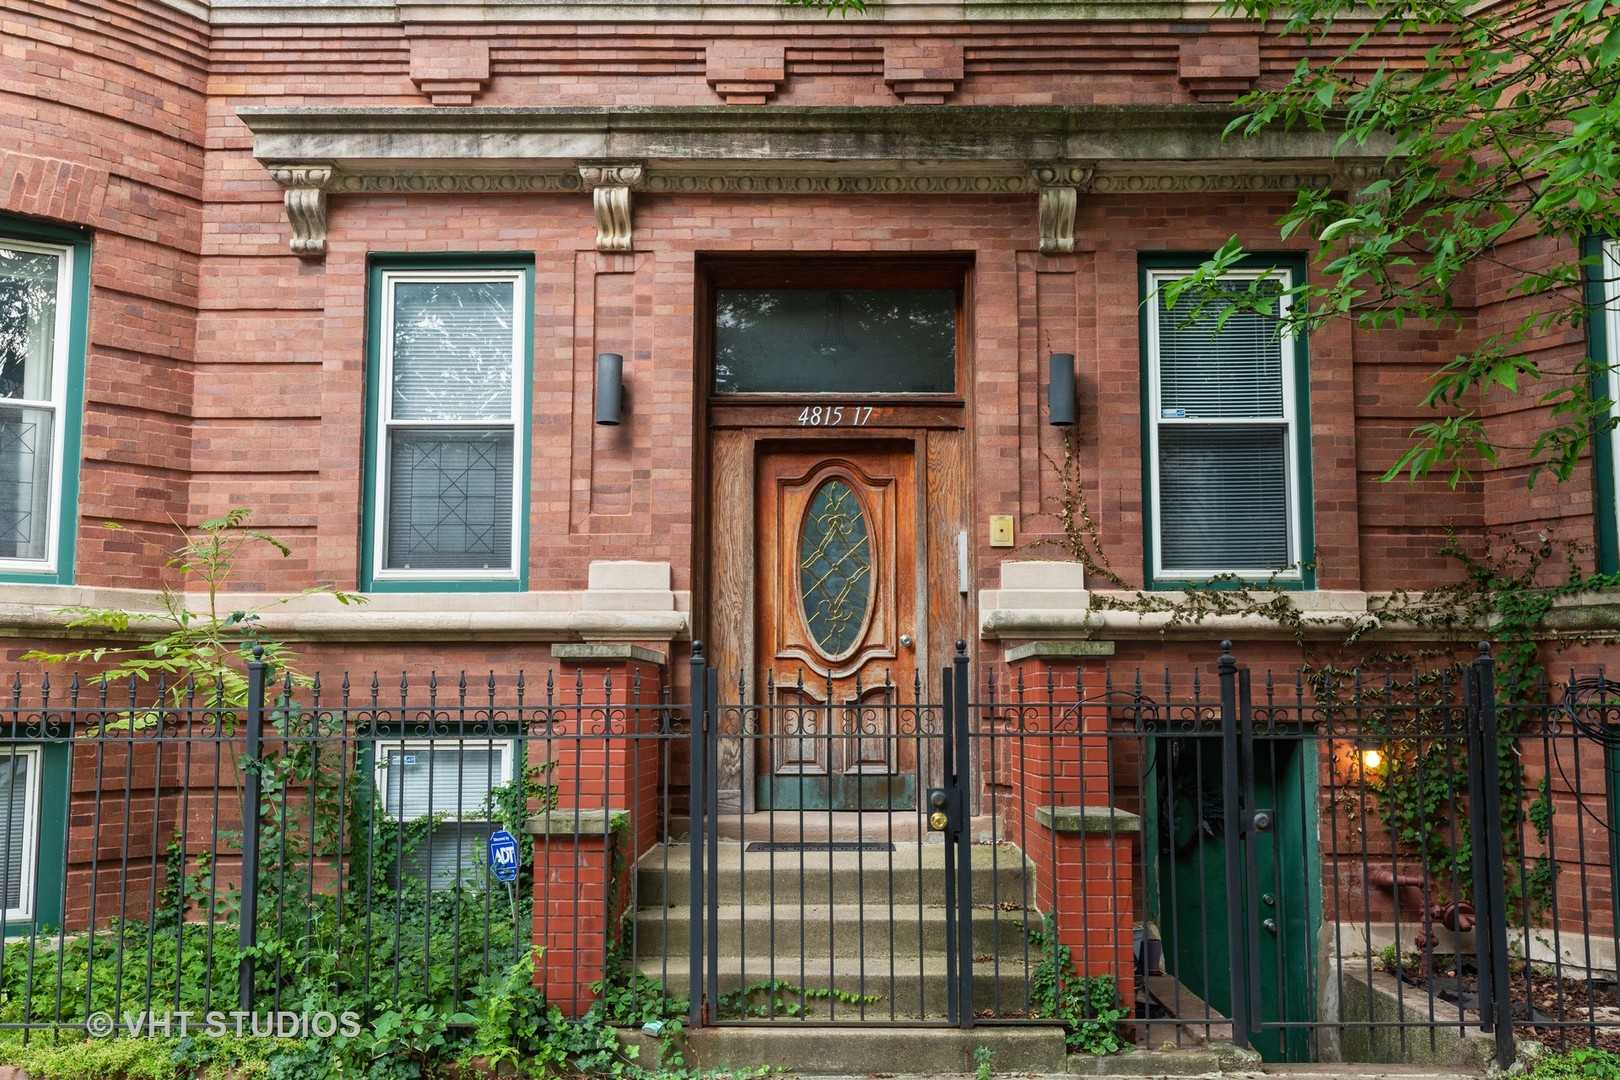 4817 Evans Unit Unit 3s ,Chicago, Illinois 60615